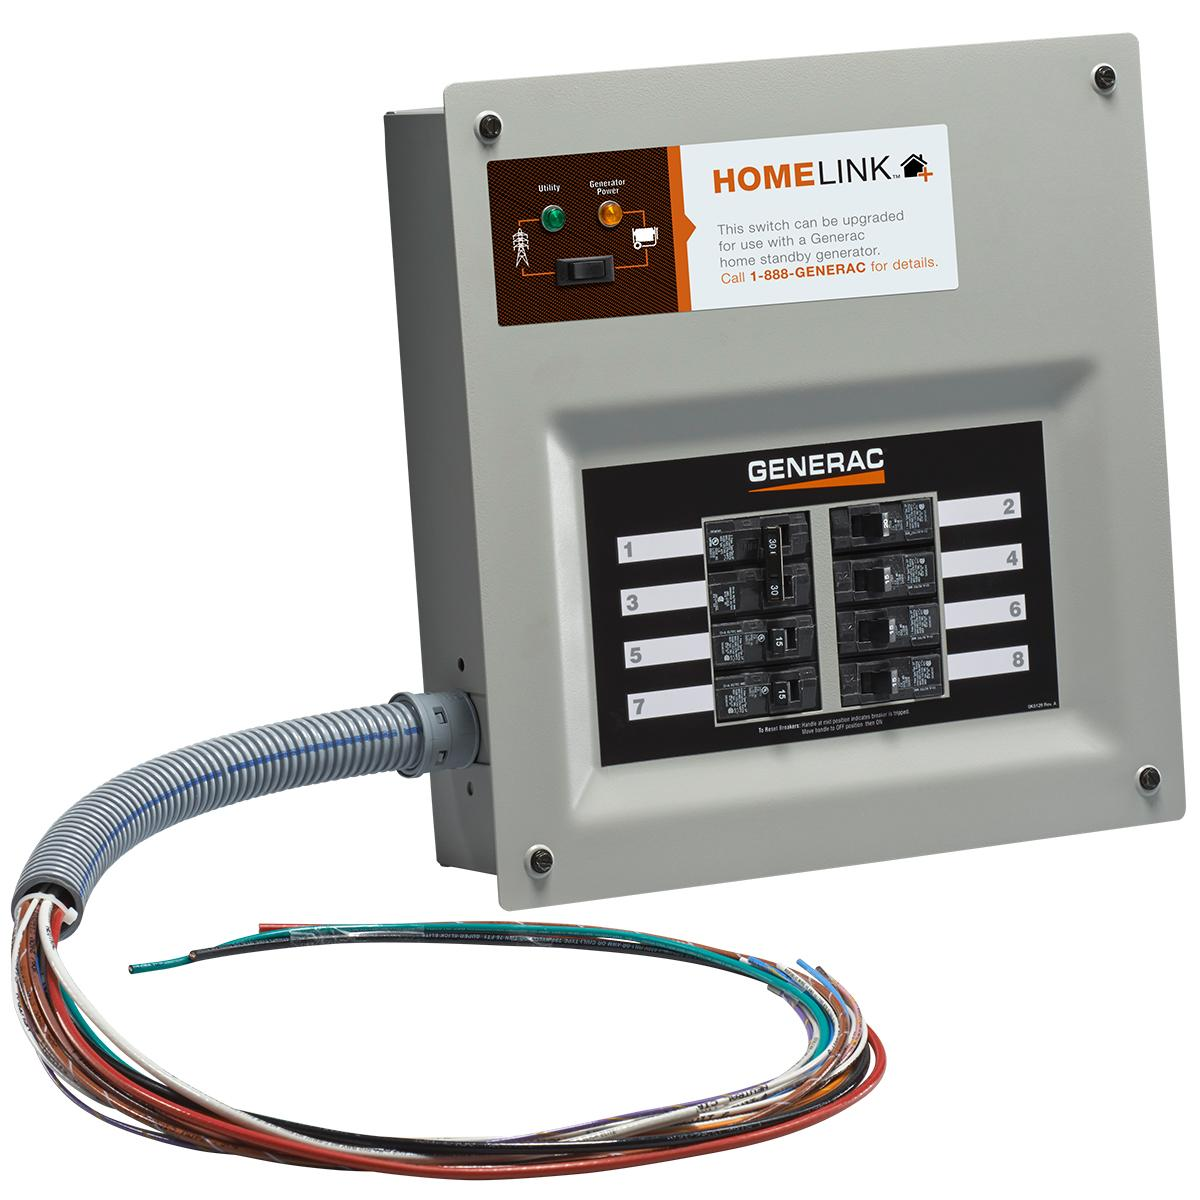 Generac 6852 Home Link Upgradeable Transfer Switch Kit Generator Wiring View Larger